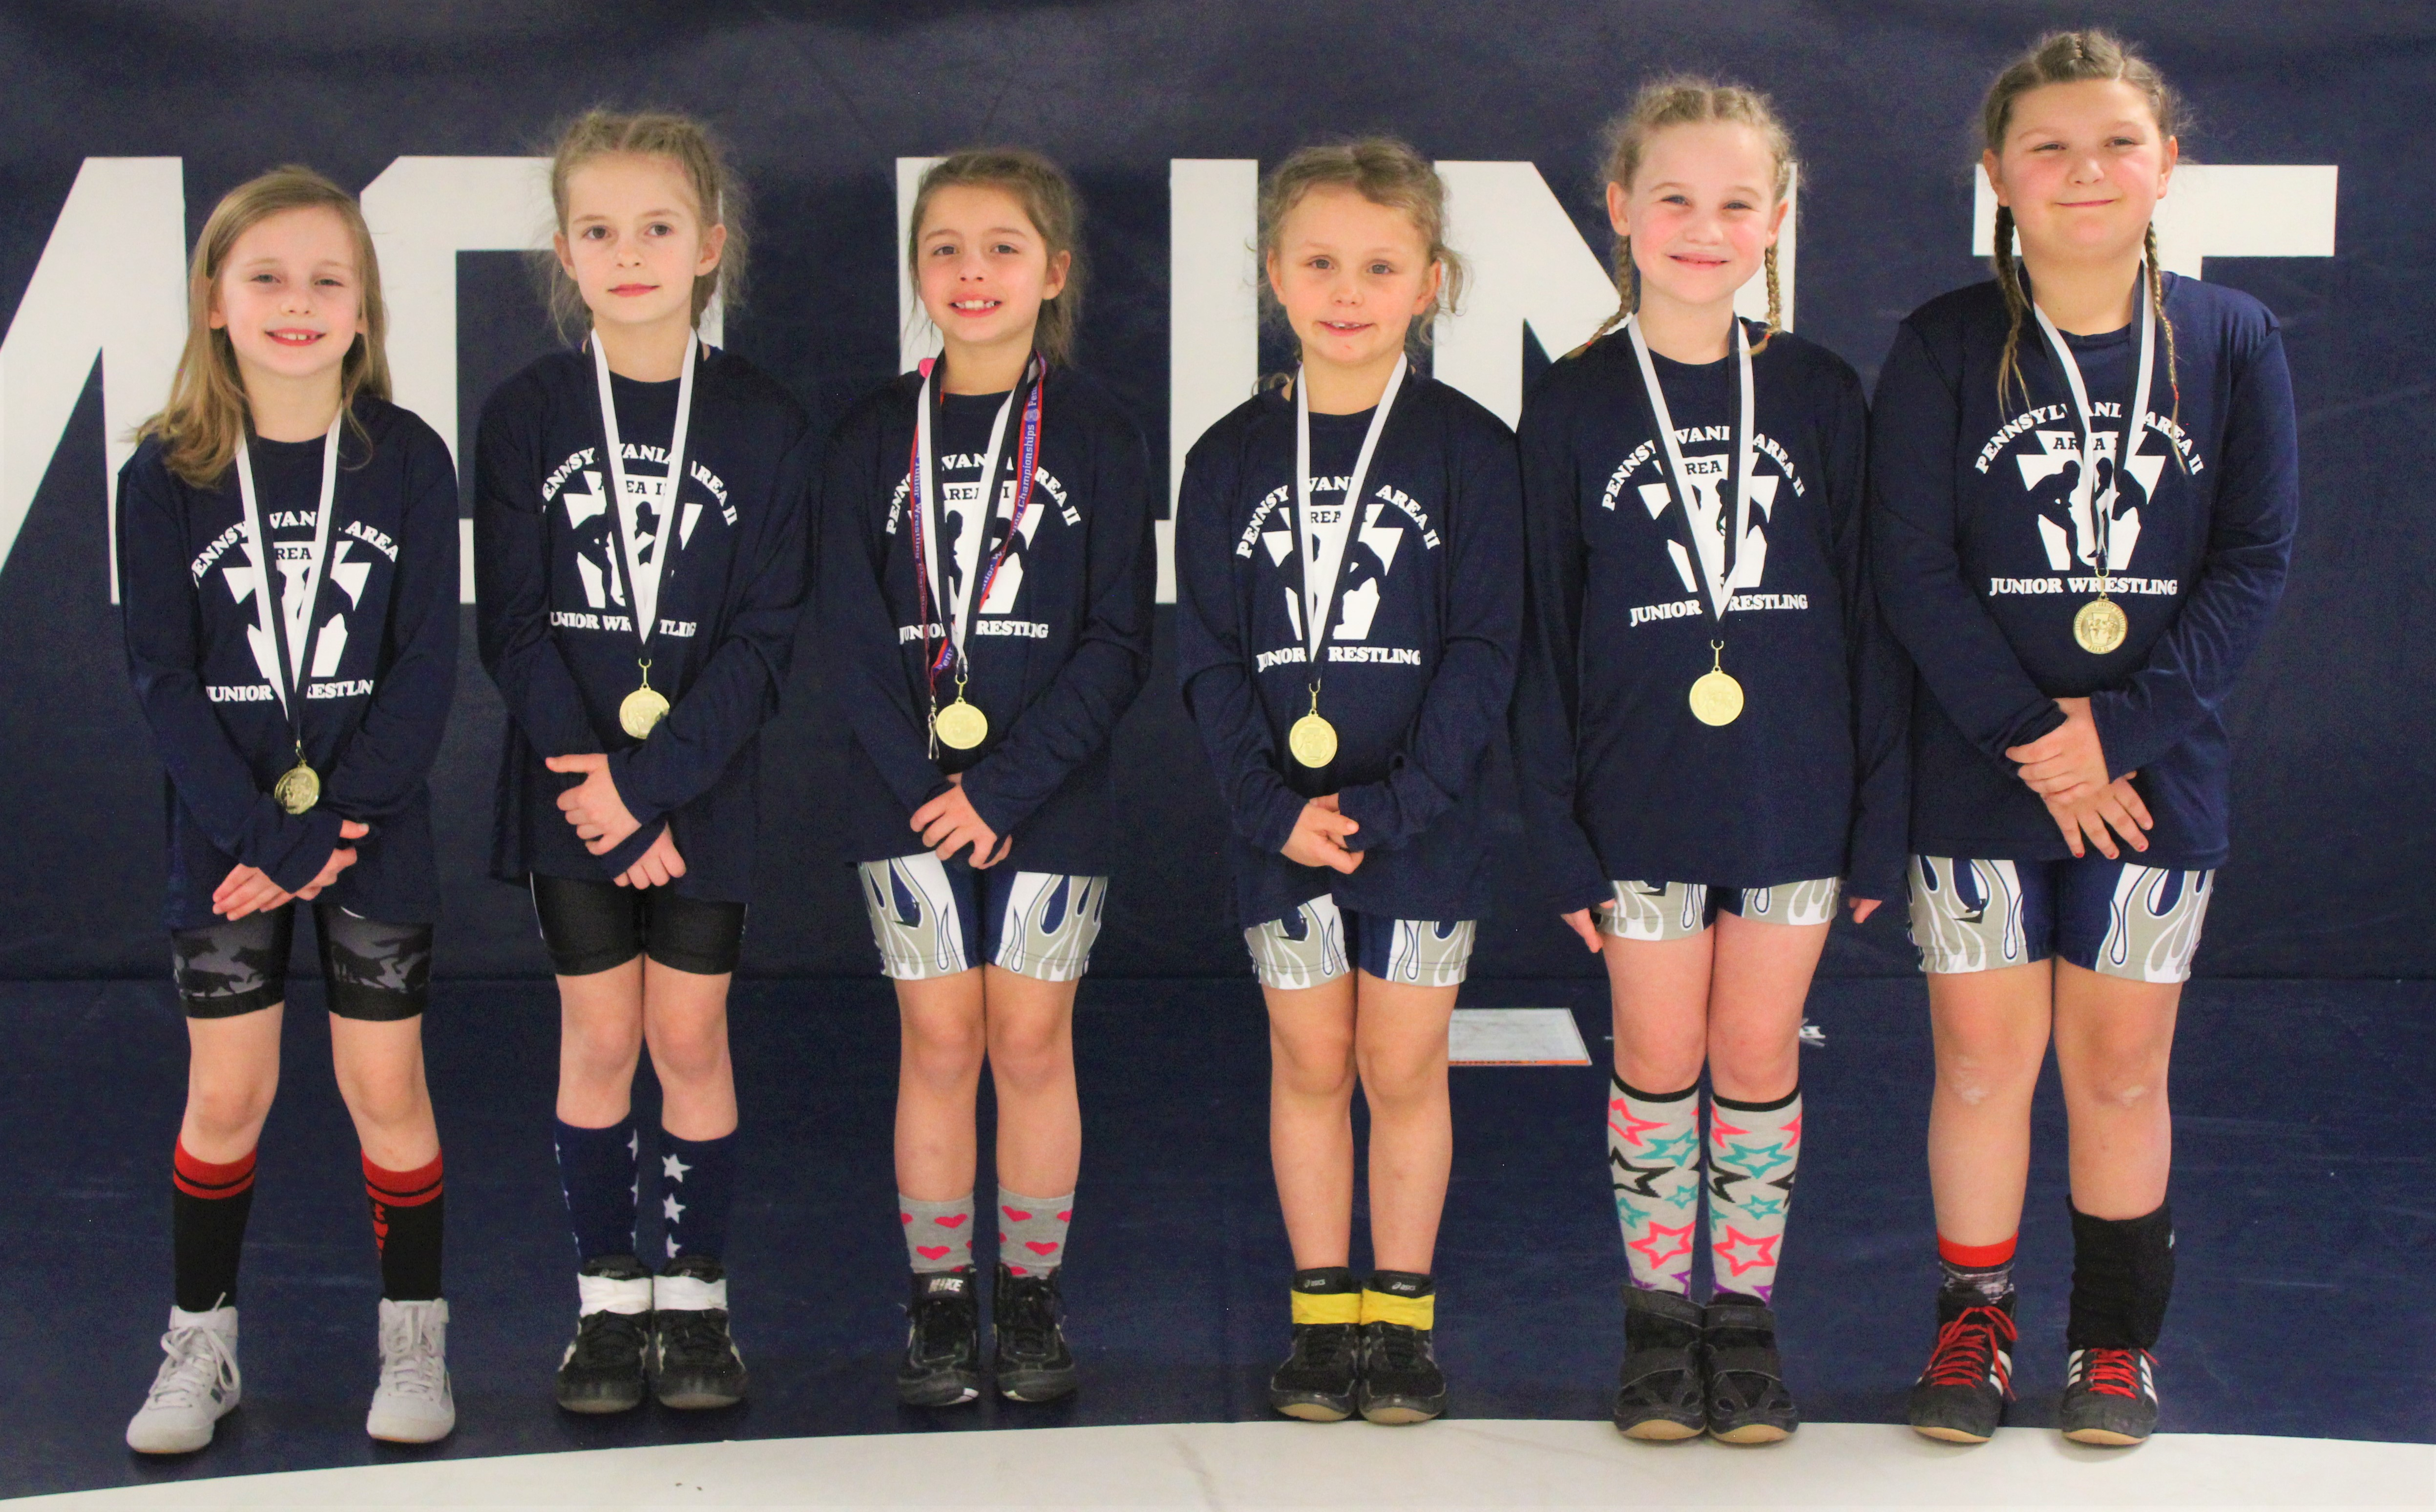 2019 PJW Girls Champs 8andUnder